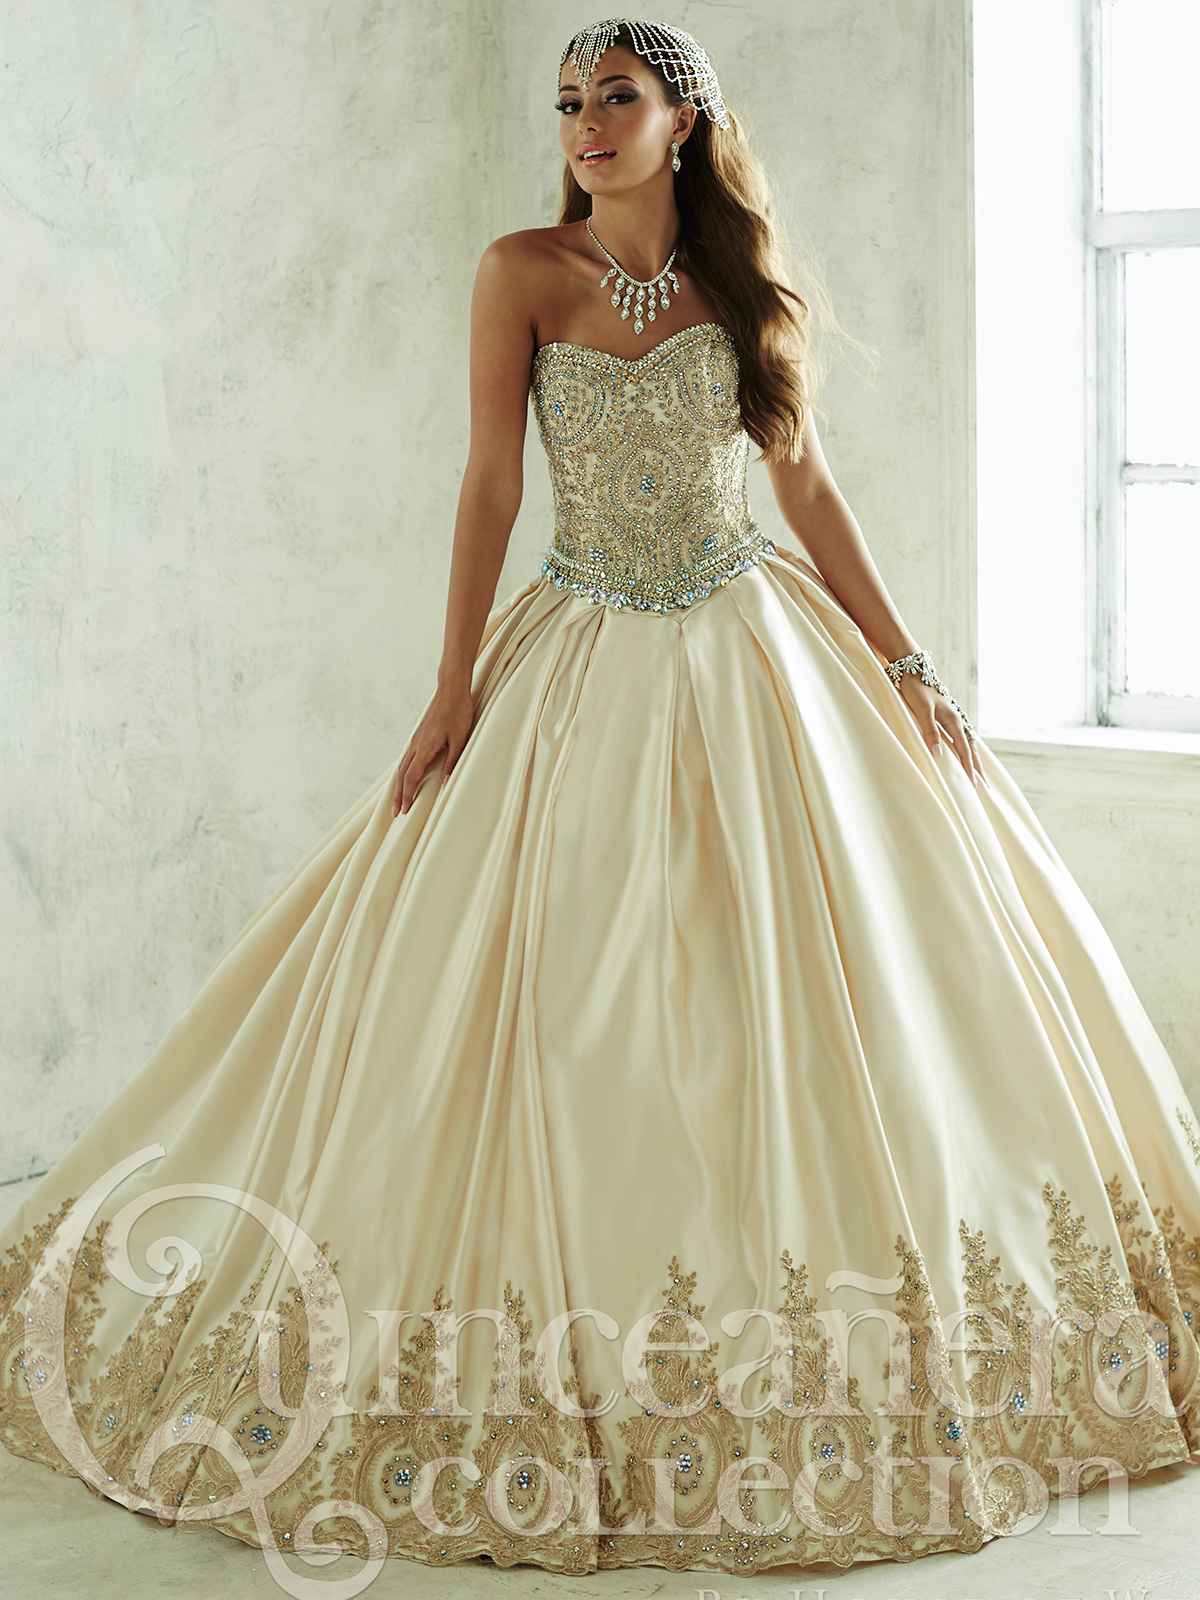 Wedding Quinceñera Dresses dresses gowns and dress ideas allure bridals style c383